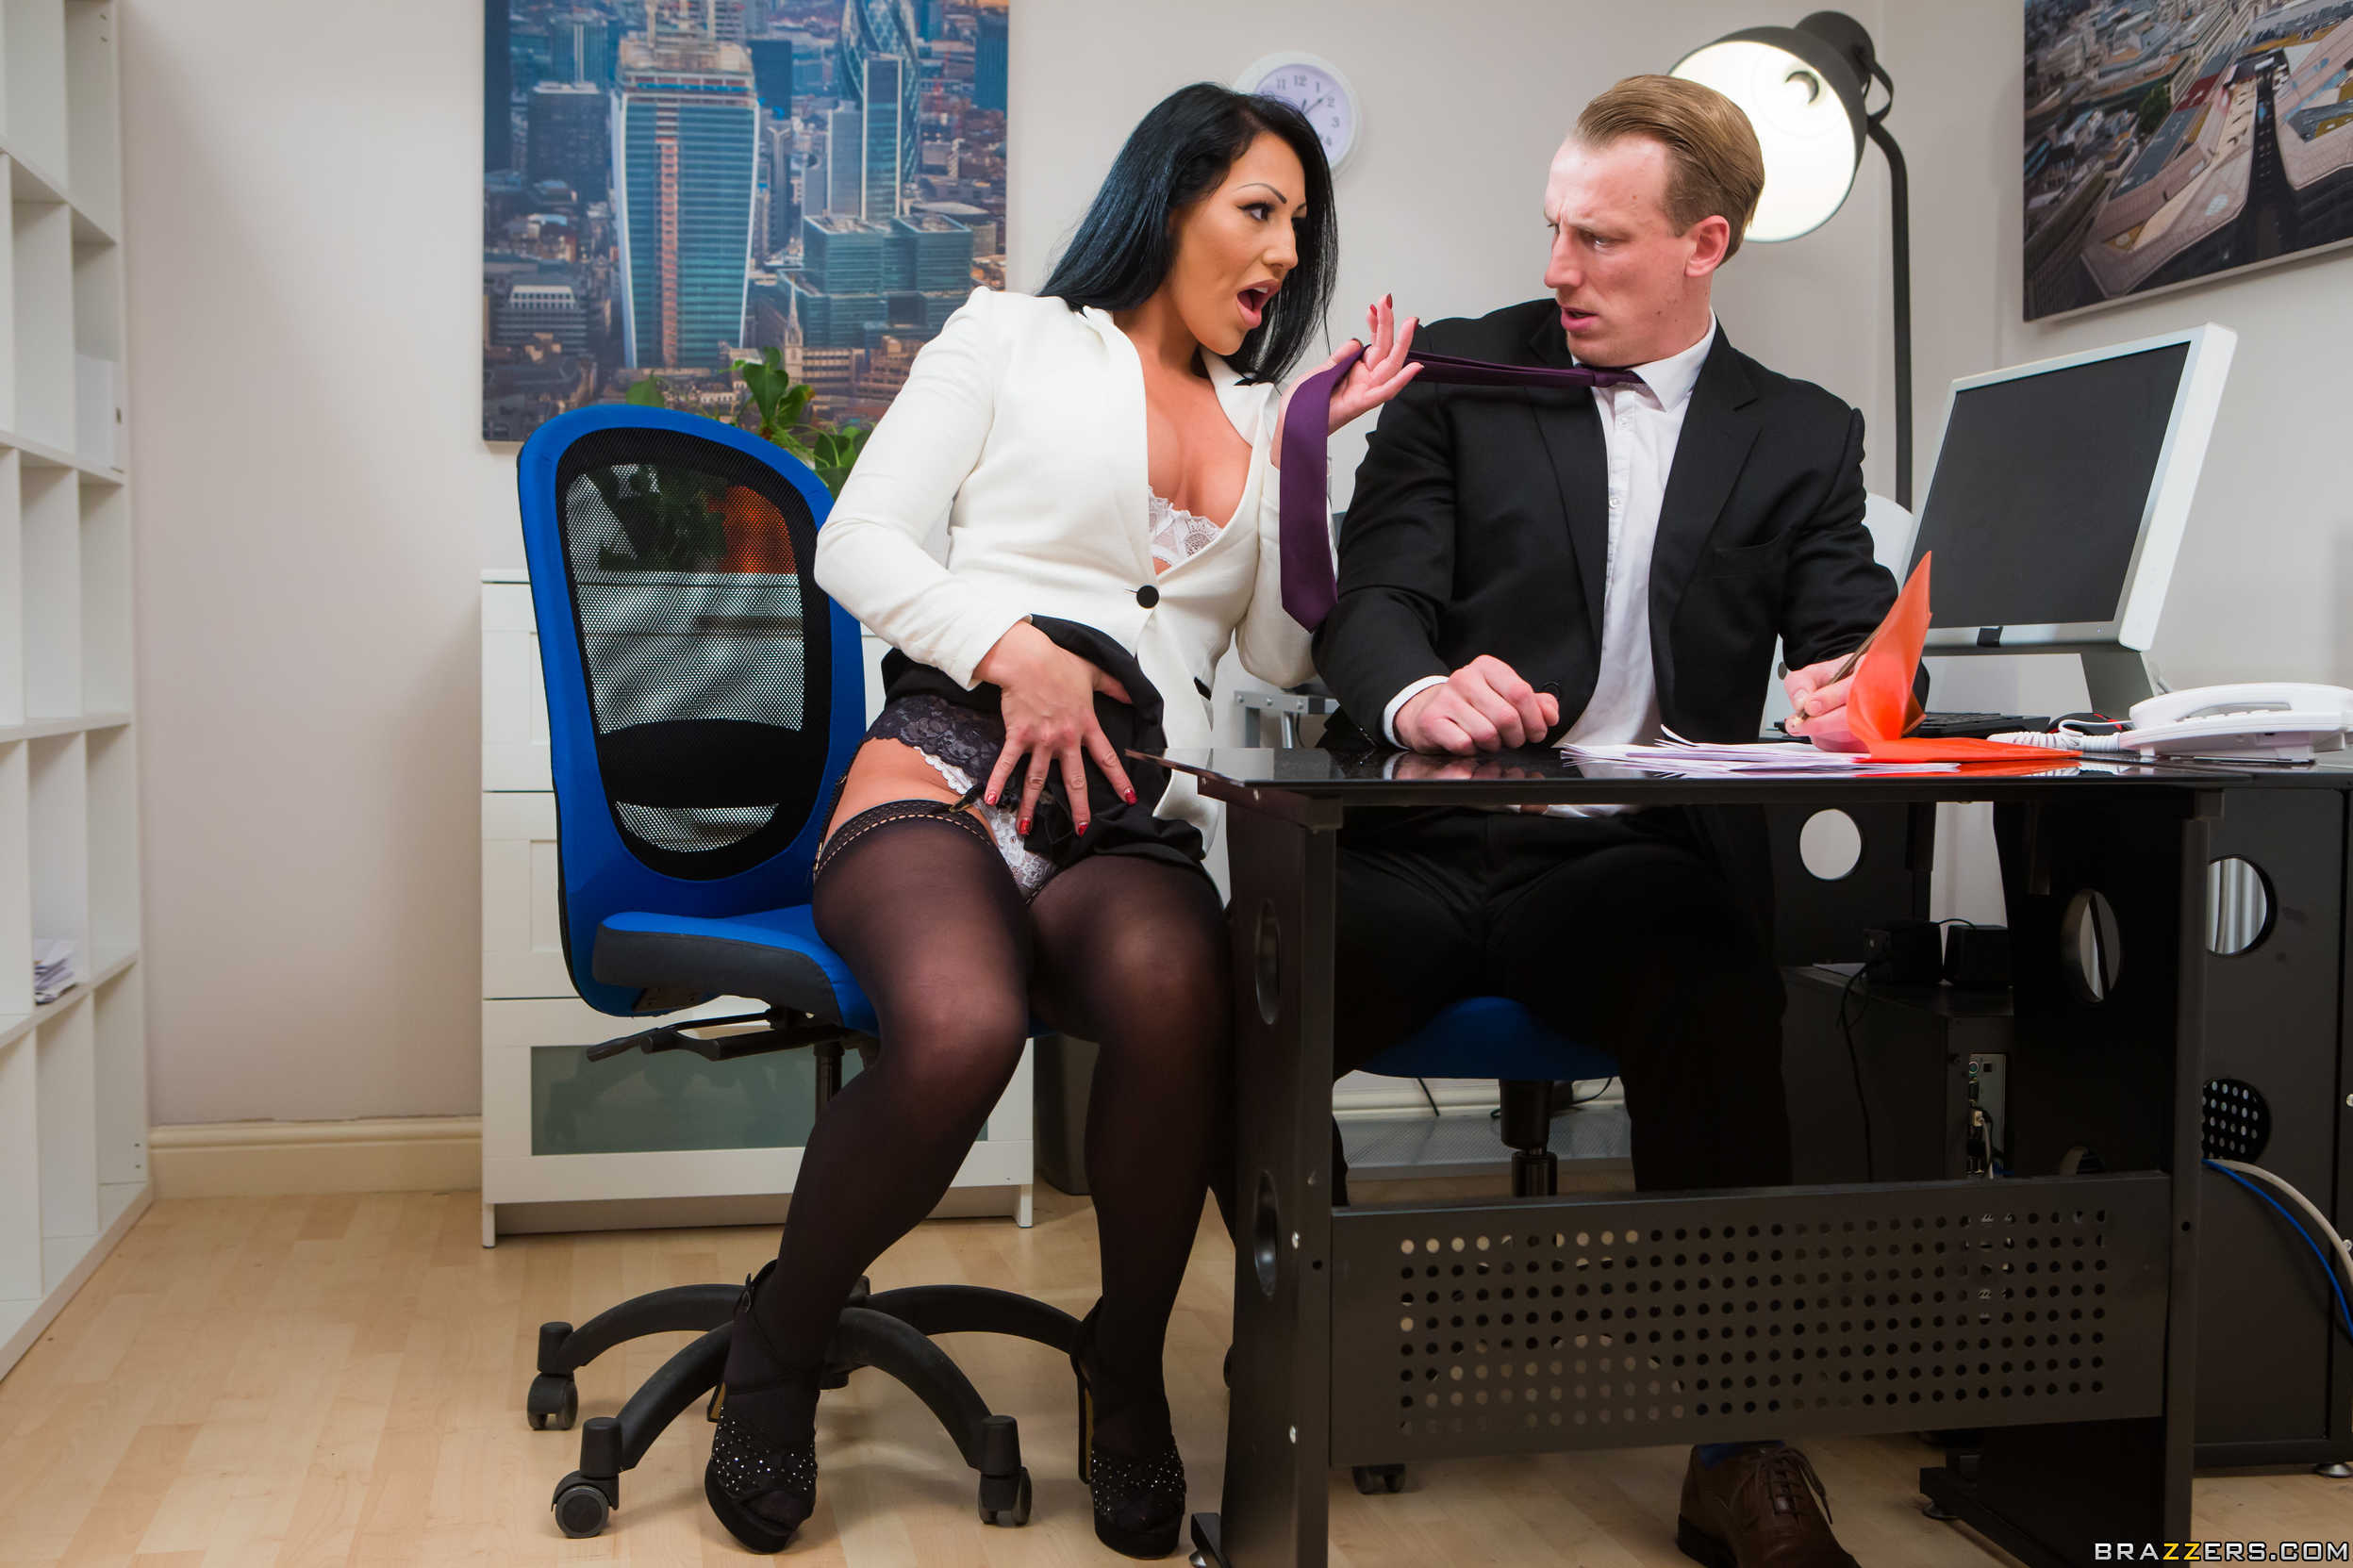 Candi Kayne A Teen Secretary Showing Nice Cleavage To Coworker Luke Hardy 608106 Office Receptionist With Shaved Vagina Wild Sex With Employer Get Caught